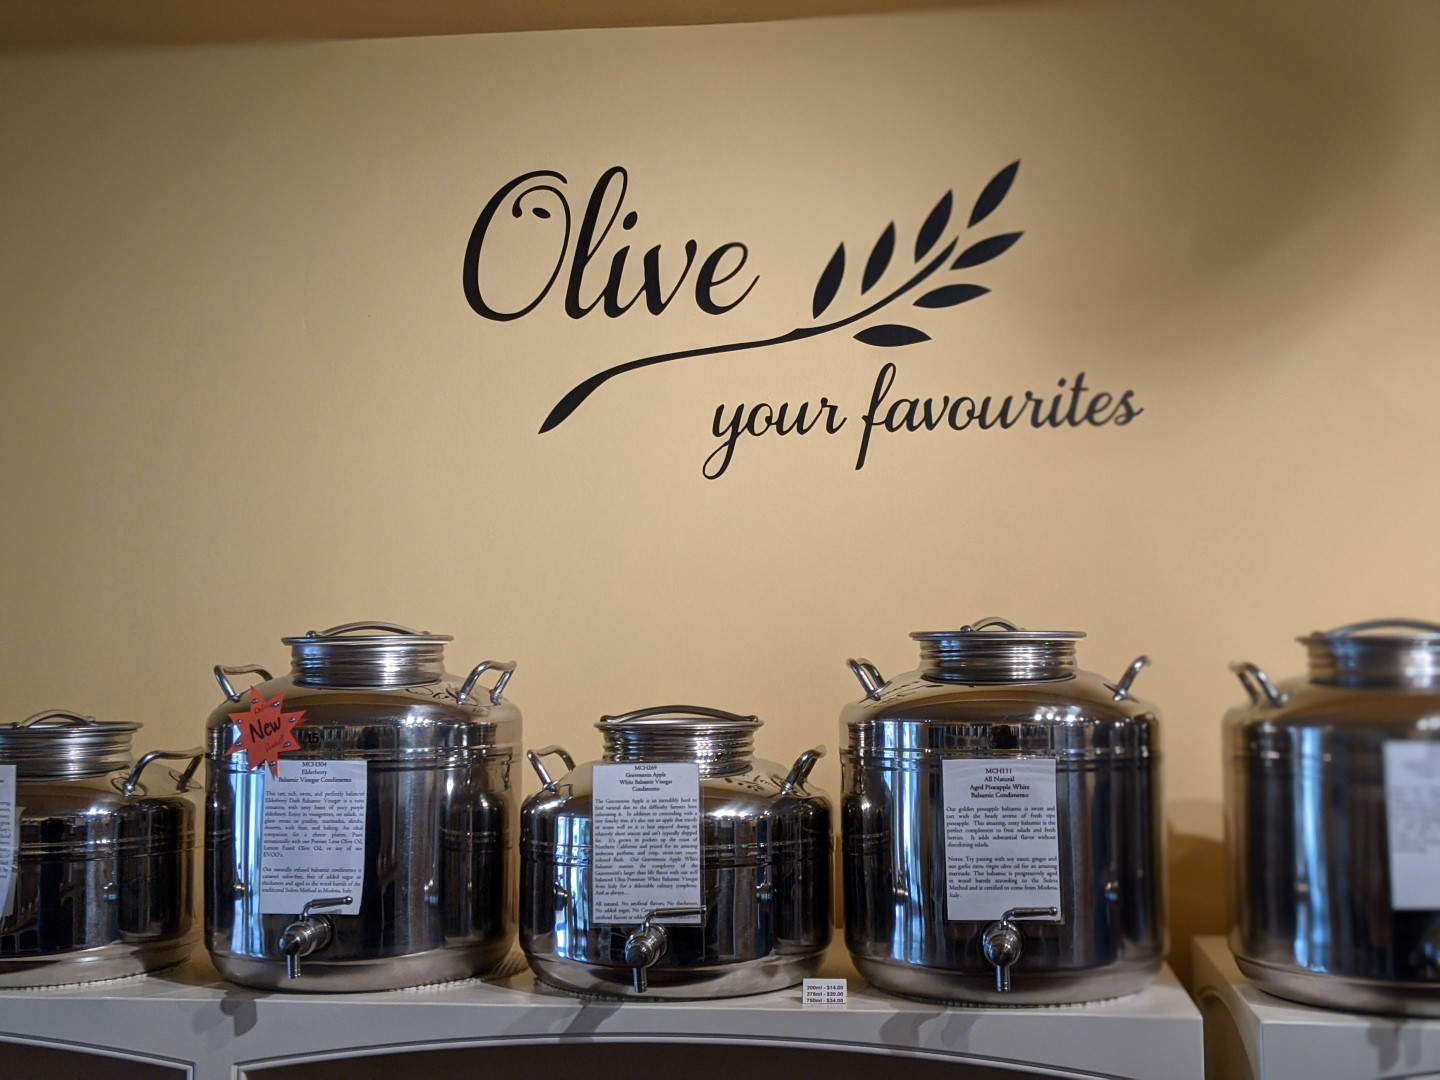 olive cans in Stratford ontario